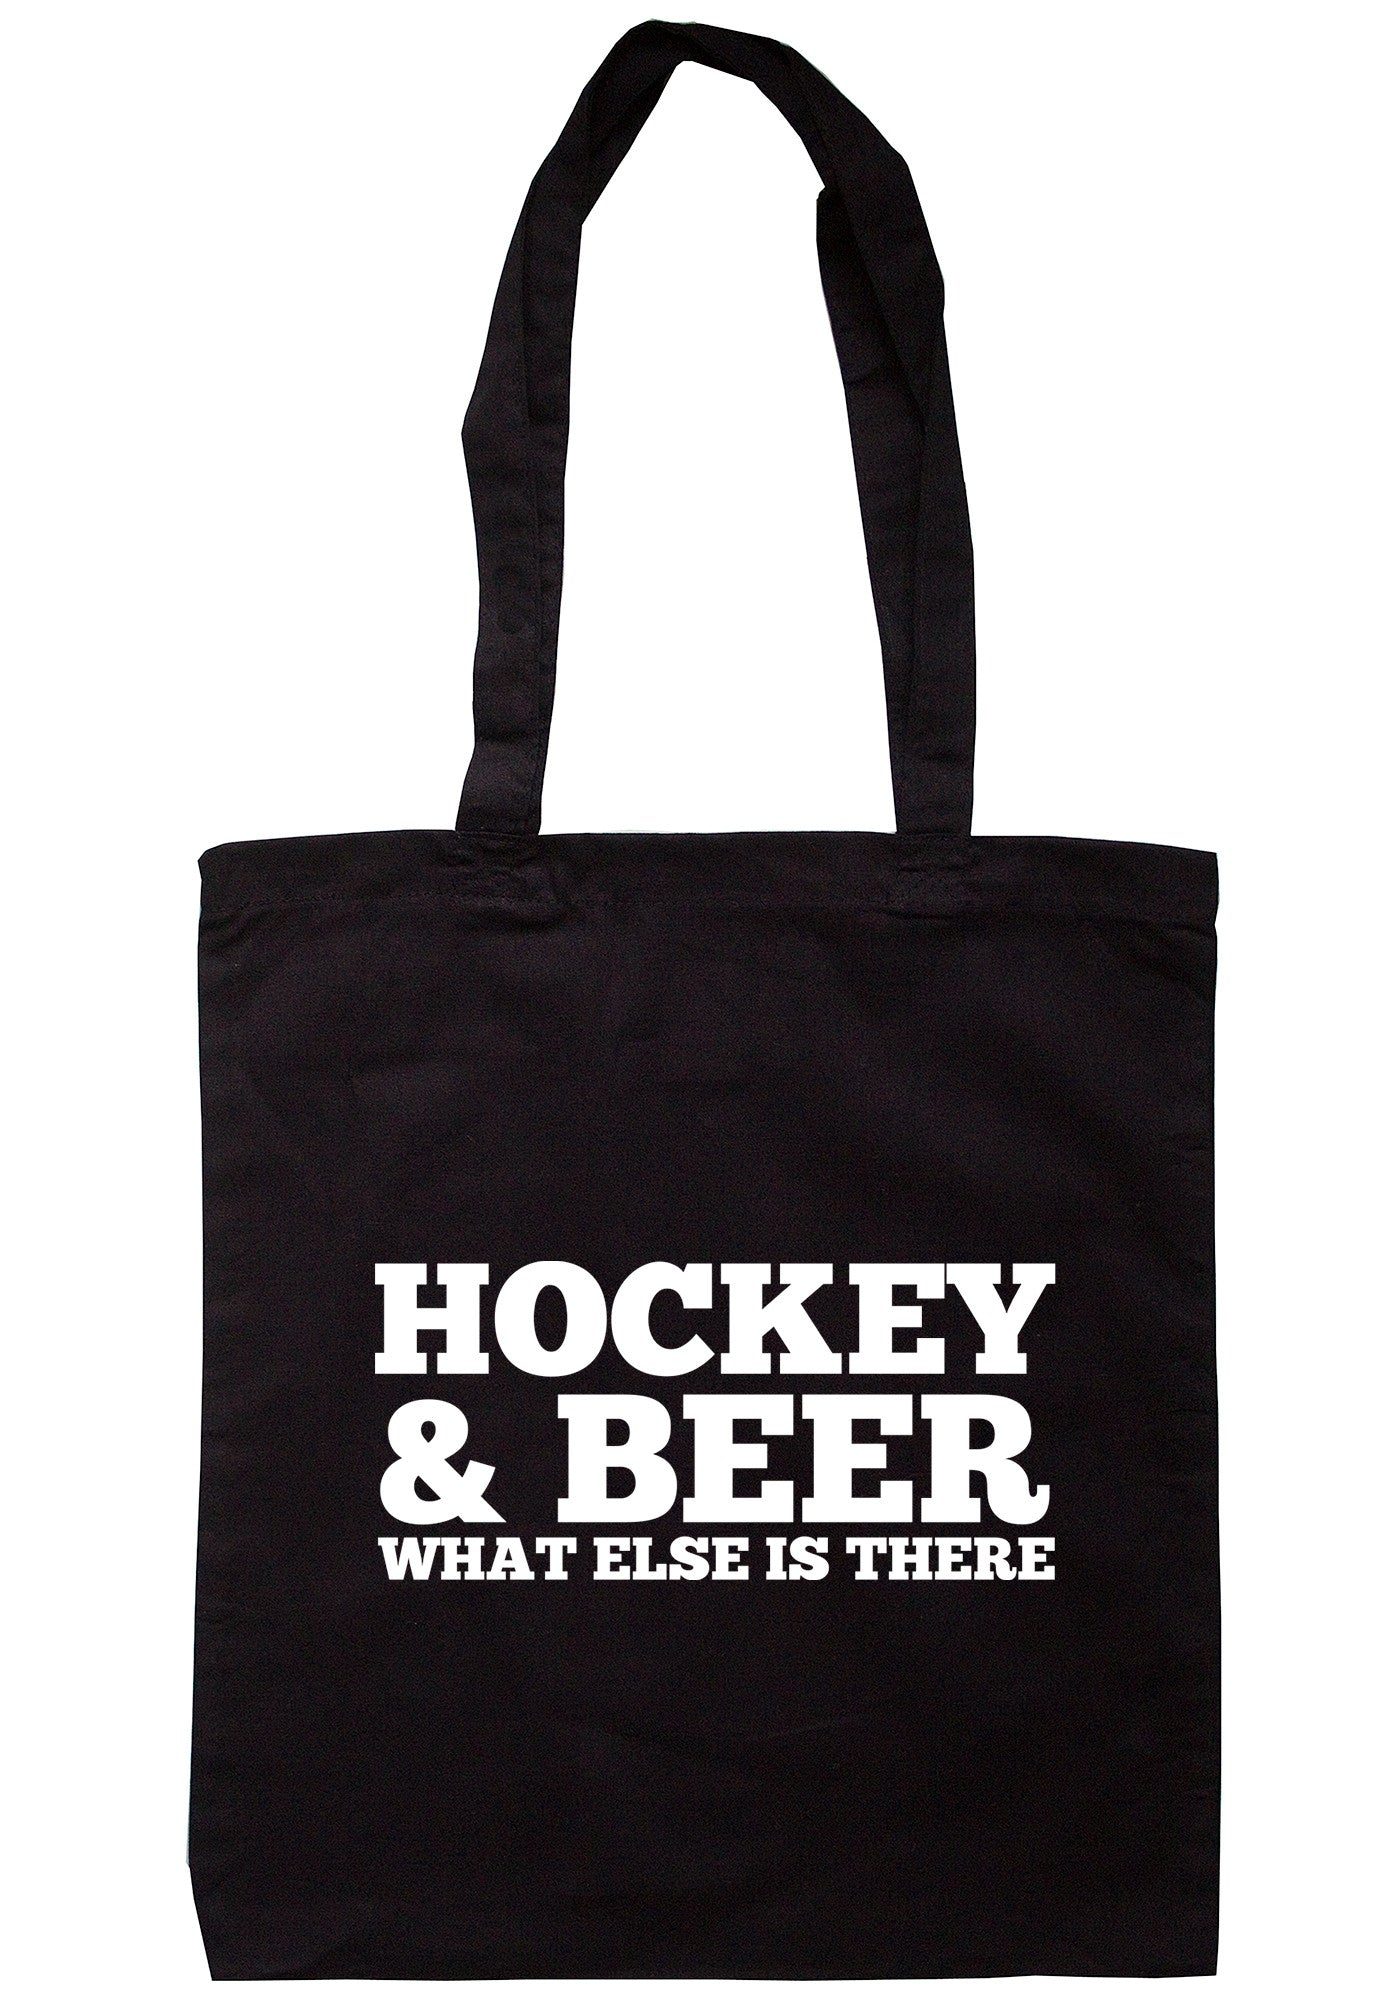 Hockey & Beer What Else Is There Tote Bag TB0470 - Illustrated Identity Ltd.